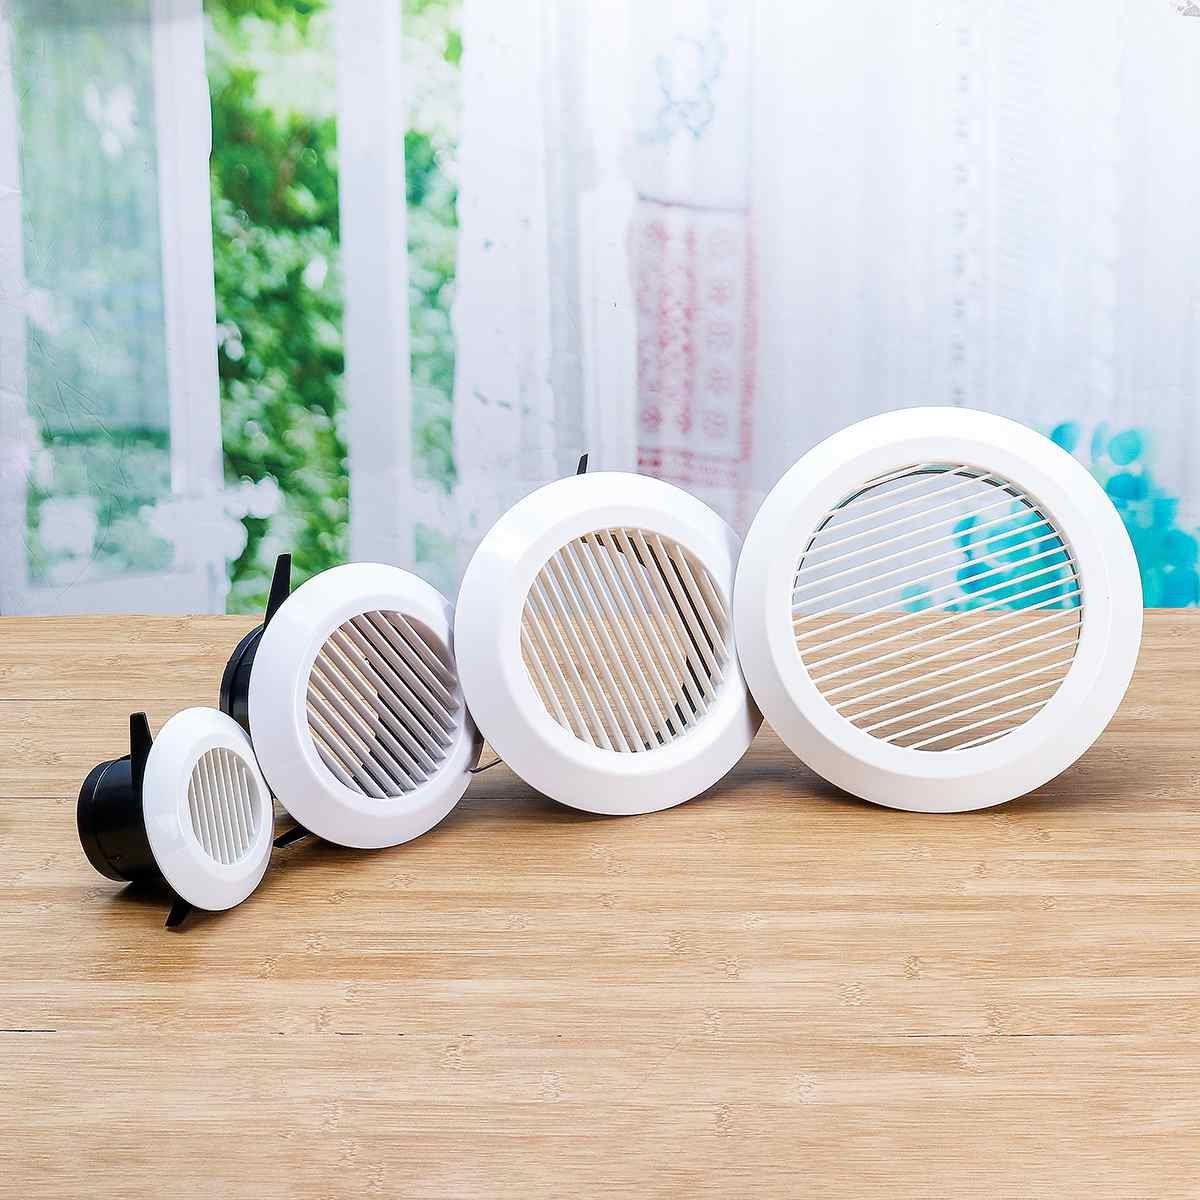 75-200mm Air Vent Ventilation Grille Grid Air Vent Round Louver Grille Cover Grate Ventilator For Kitchen Bathroom Ventilation